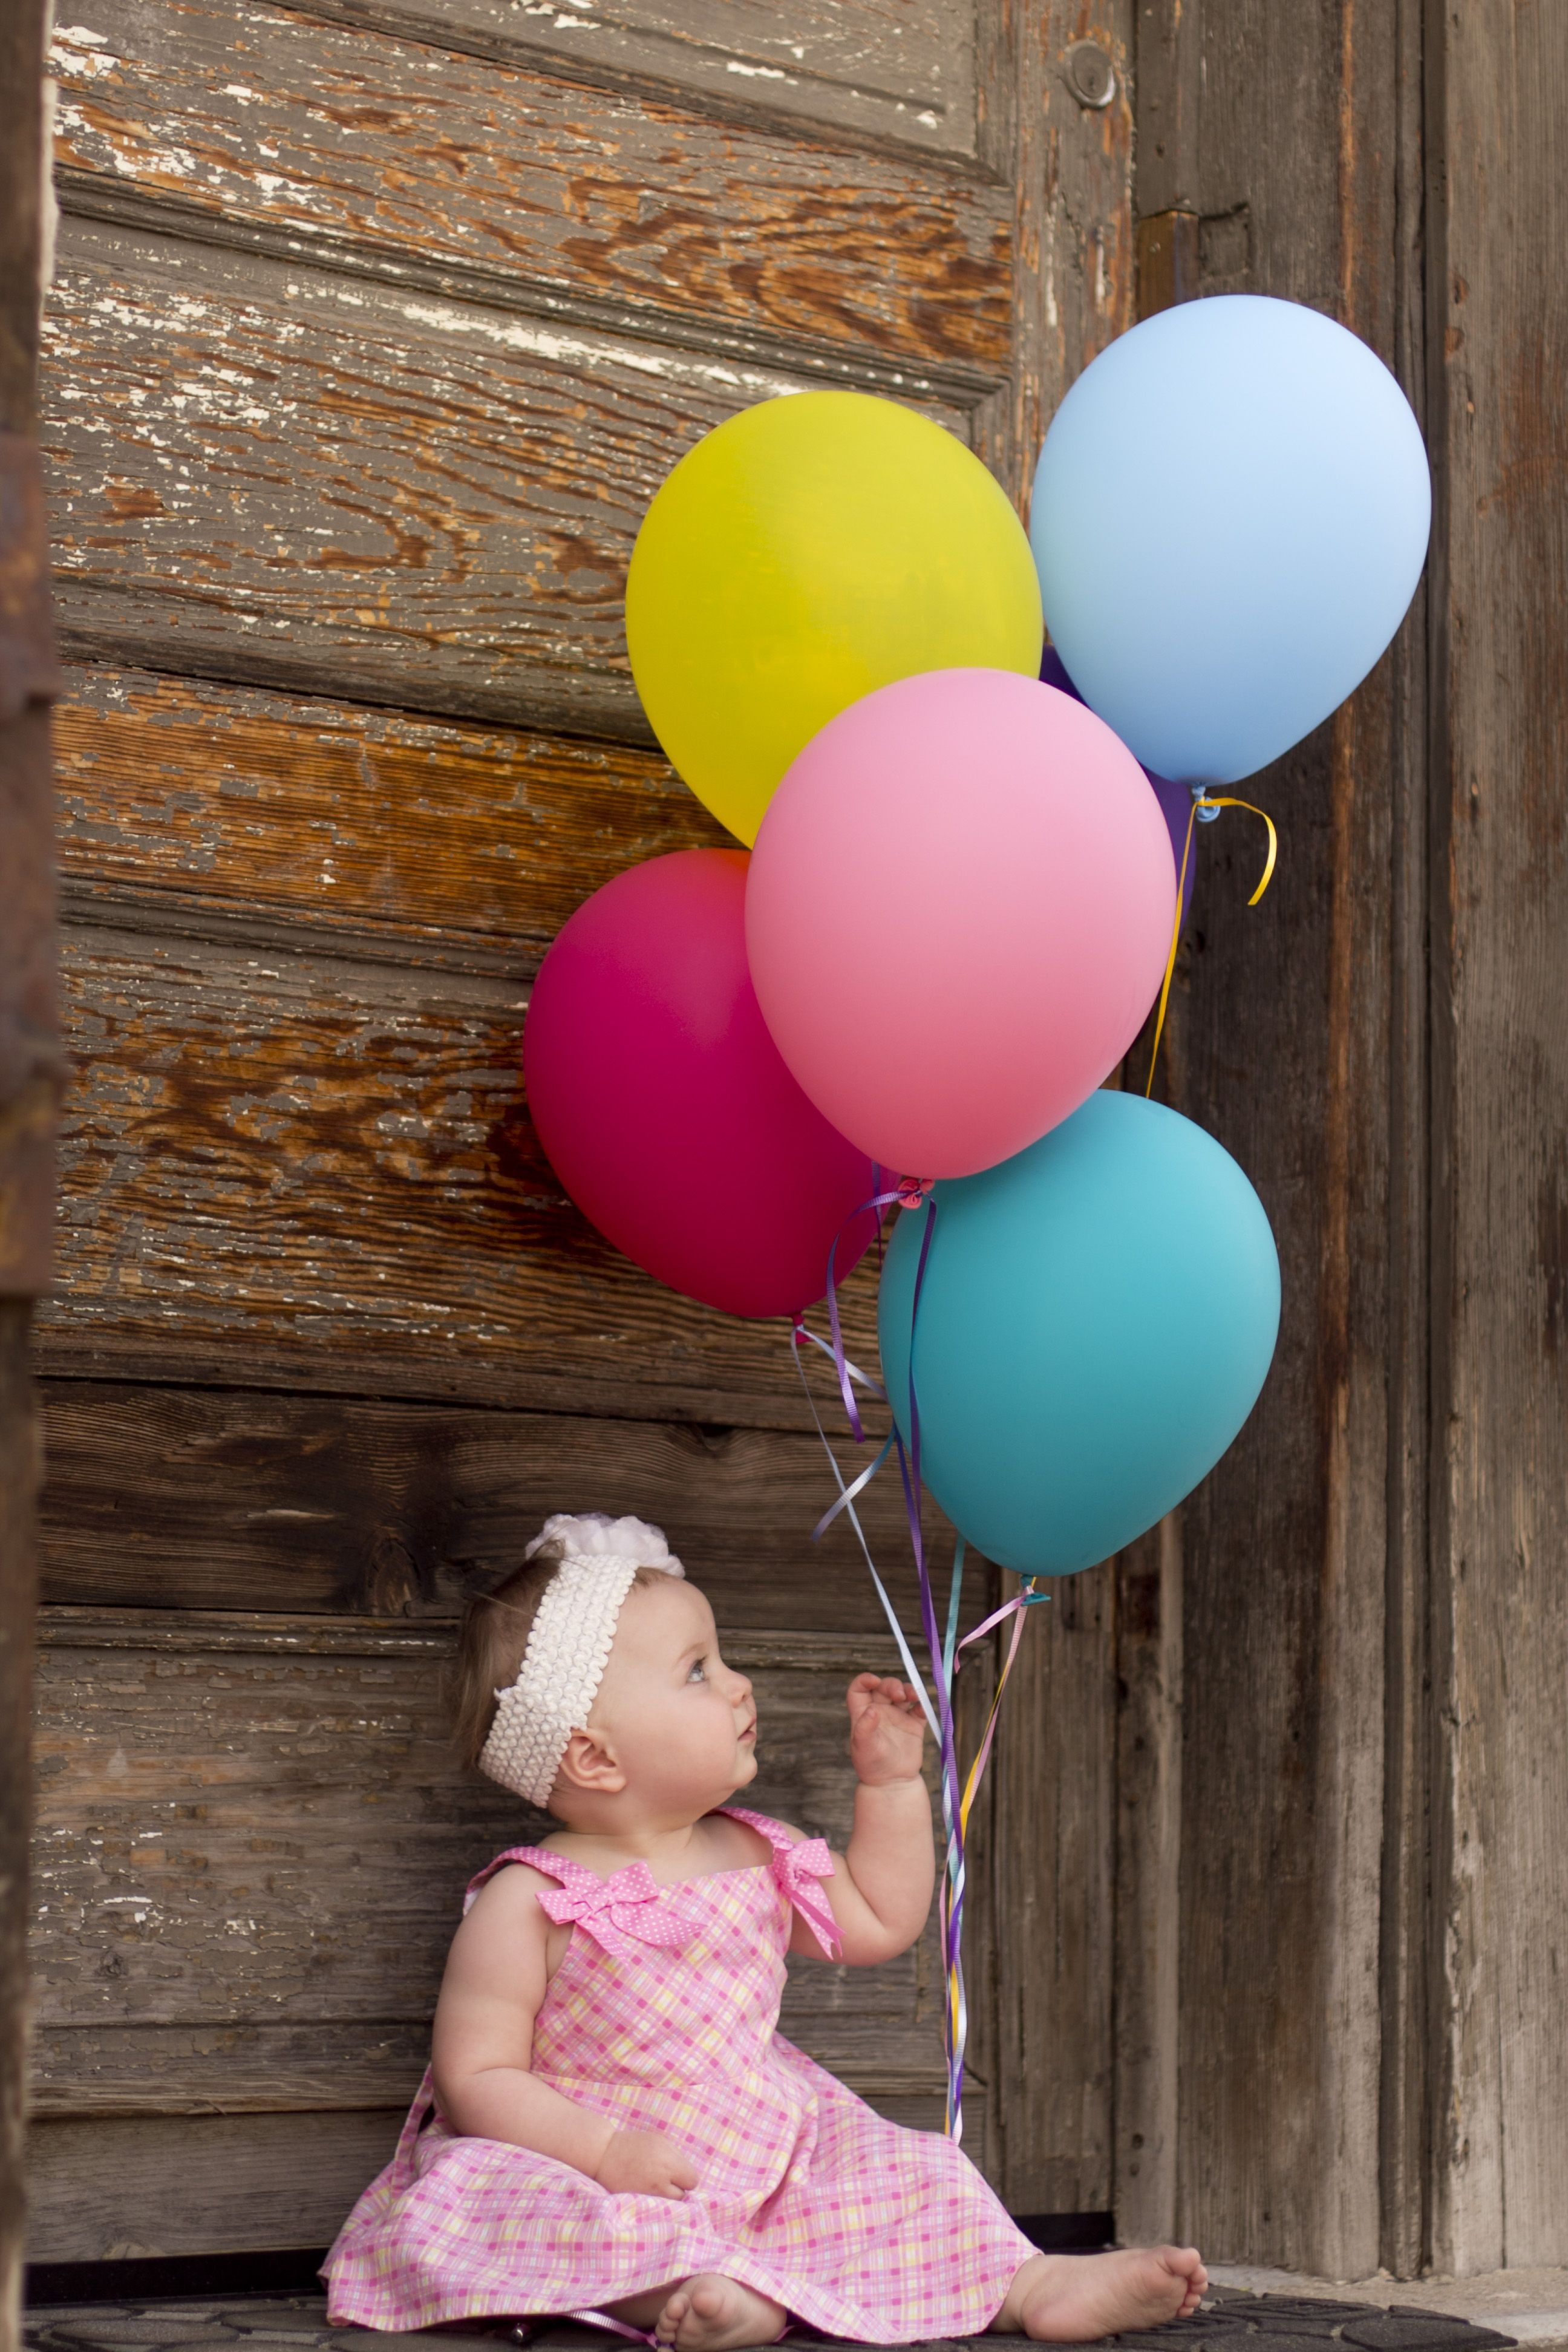 Baby with balloons. Happy spring time.